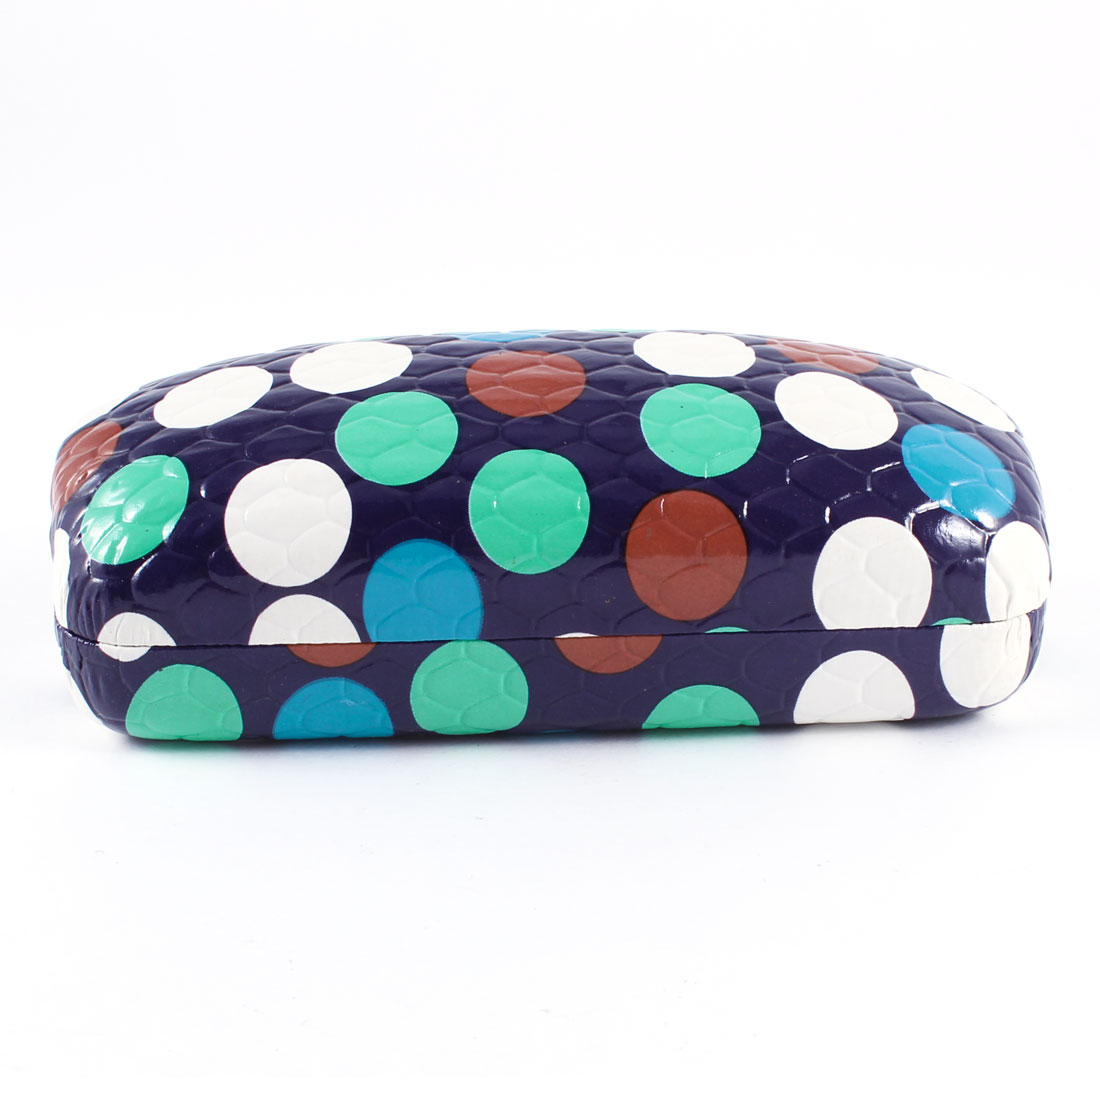 Spring Hinge Closure Colorful Dot Print Glasses Case Eggplant Color